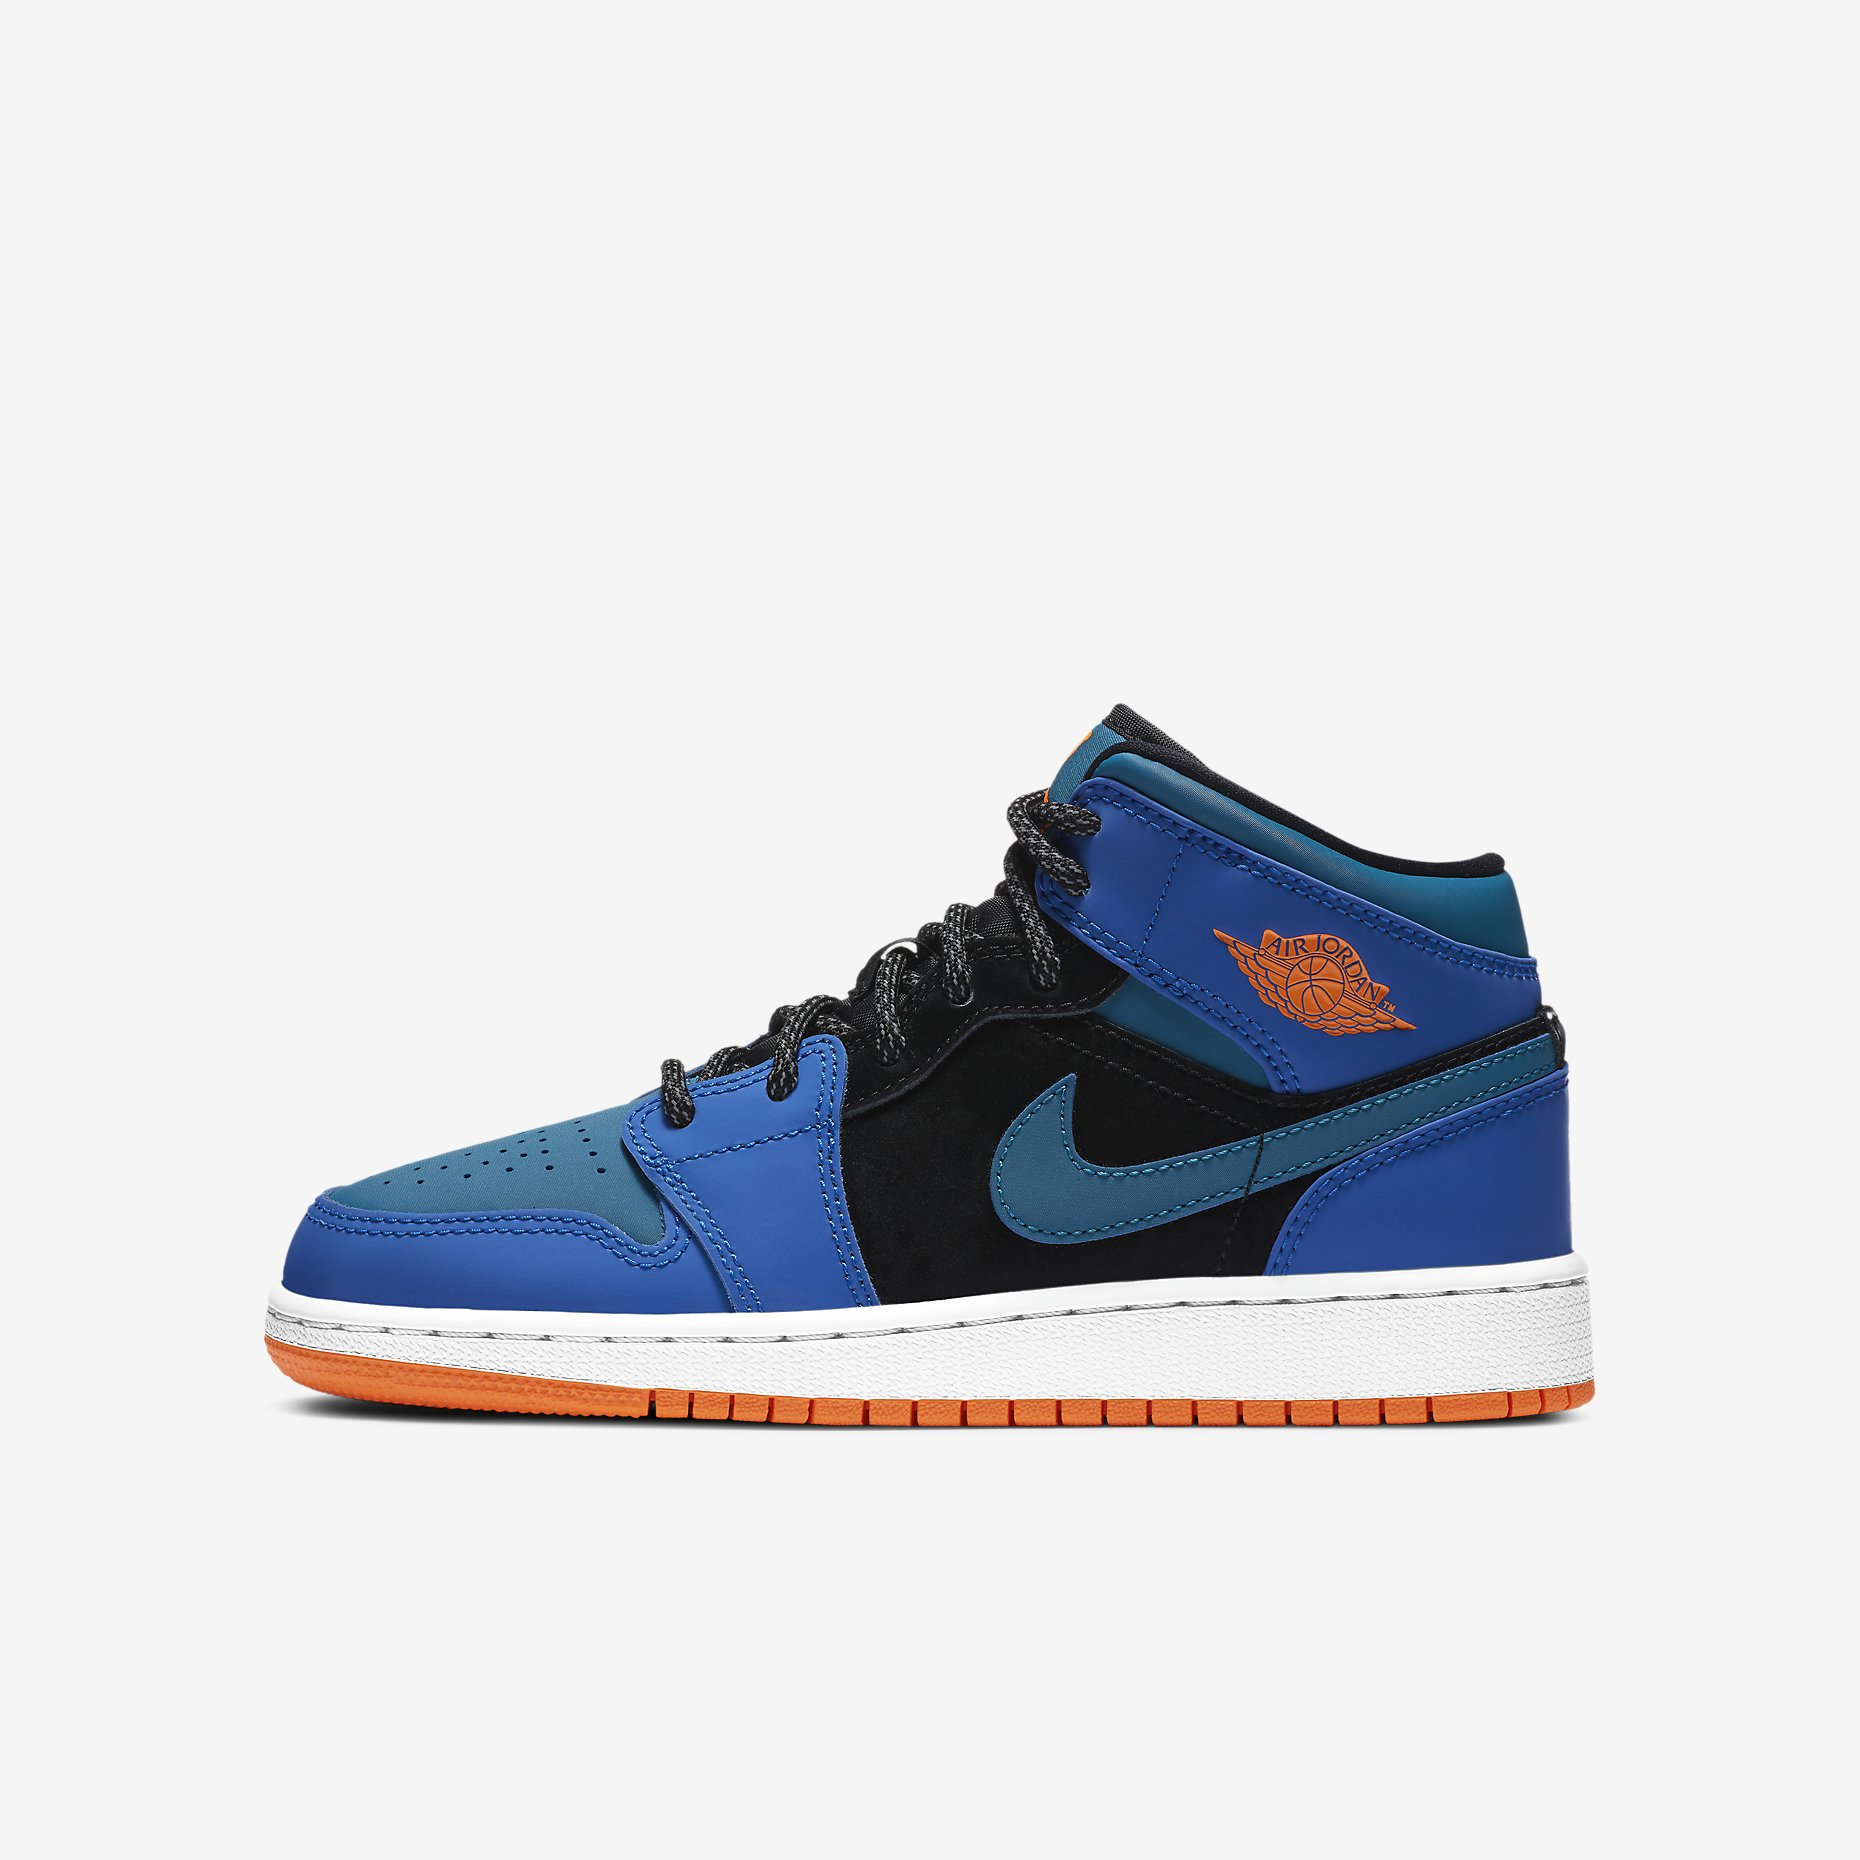 Air Jordan 1 Mid GS 'Racer Blue'}